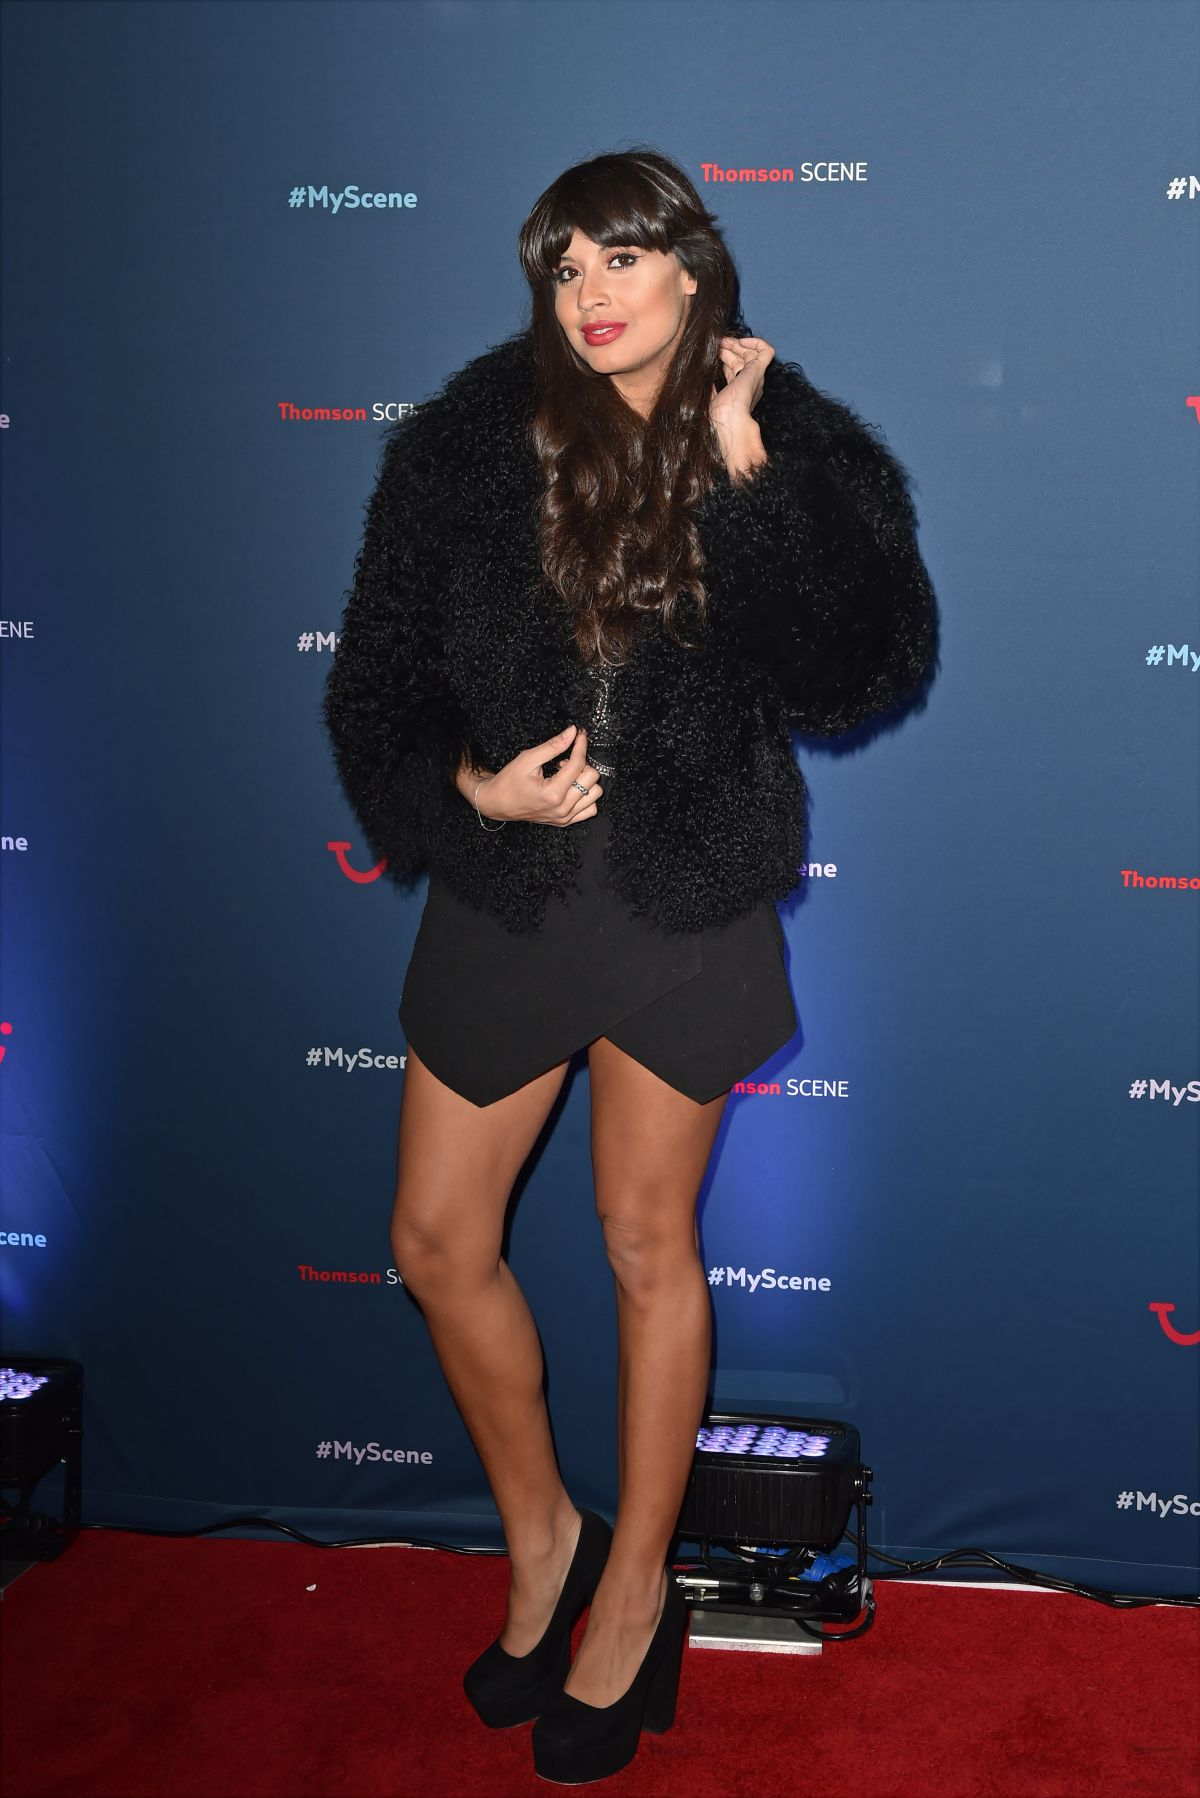 JAMEELA JAMIL at Thomson Scene Launch Event in London